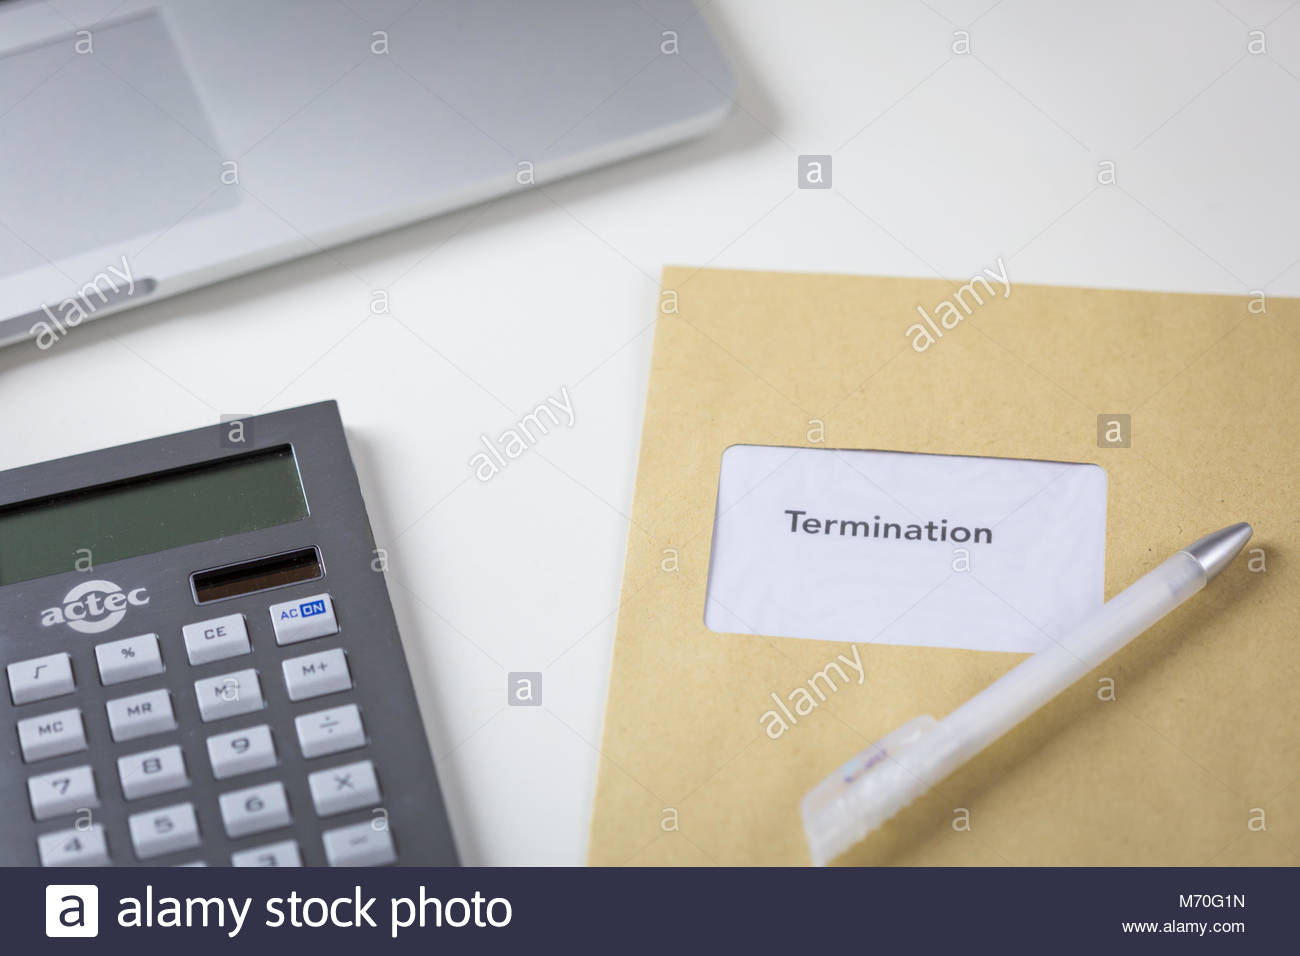 Termination or redundancy letter in an envelope - Stock Image